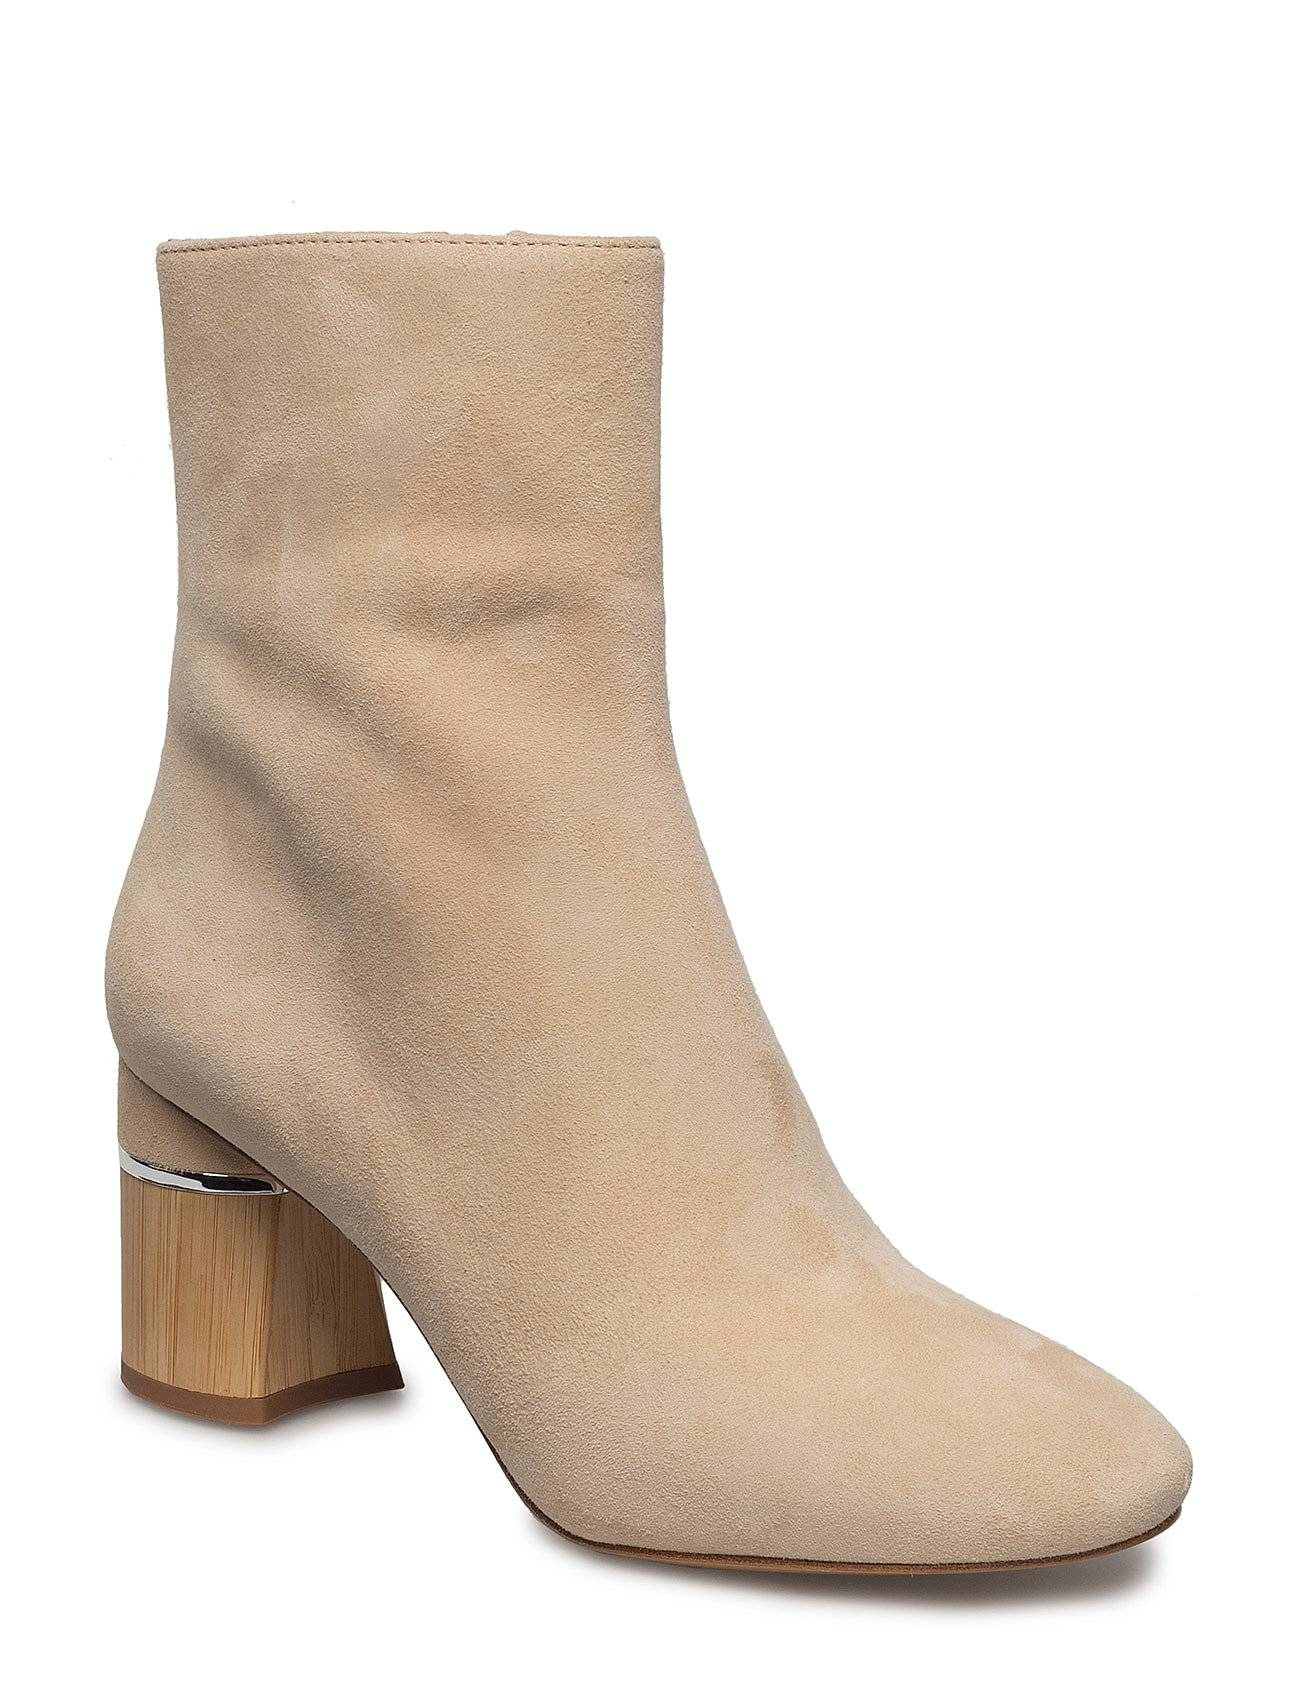 3.1 Phillip Lim Drum - 70mm Boot With Covered Heel